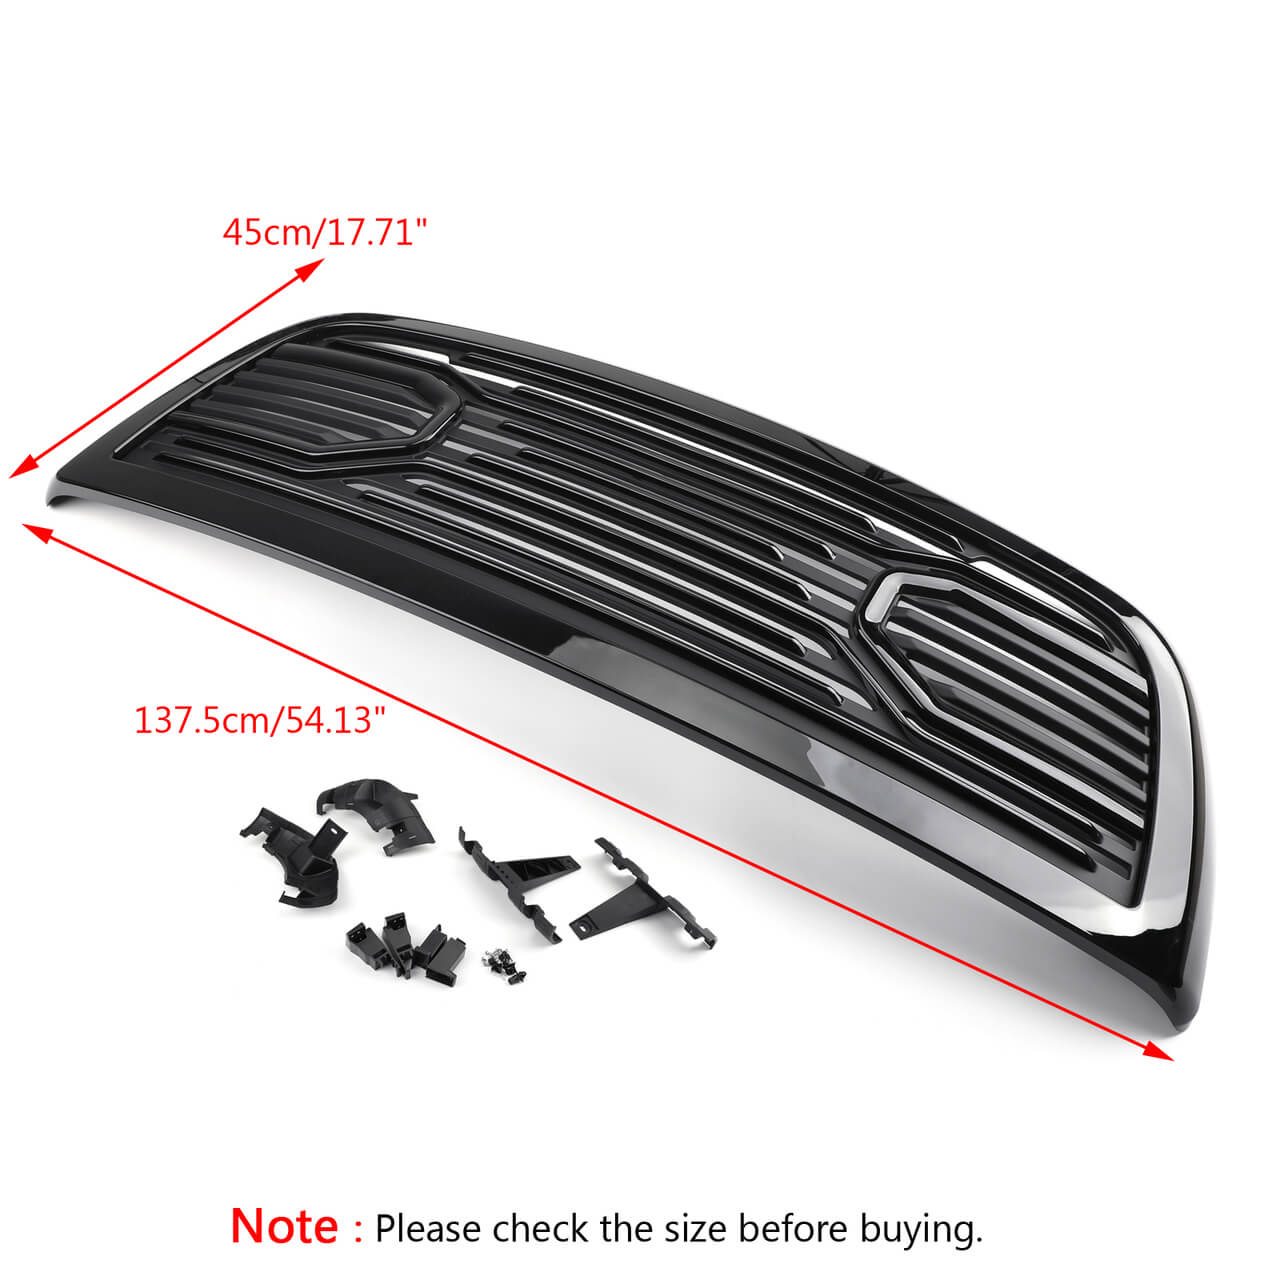 Big Horn Grille Replacement Shell For Ram 2500 3500 2010-2018 Gloss Black